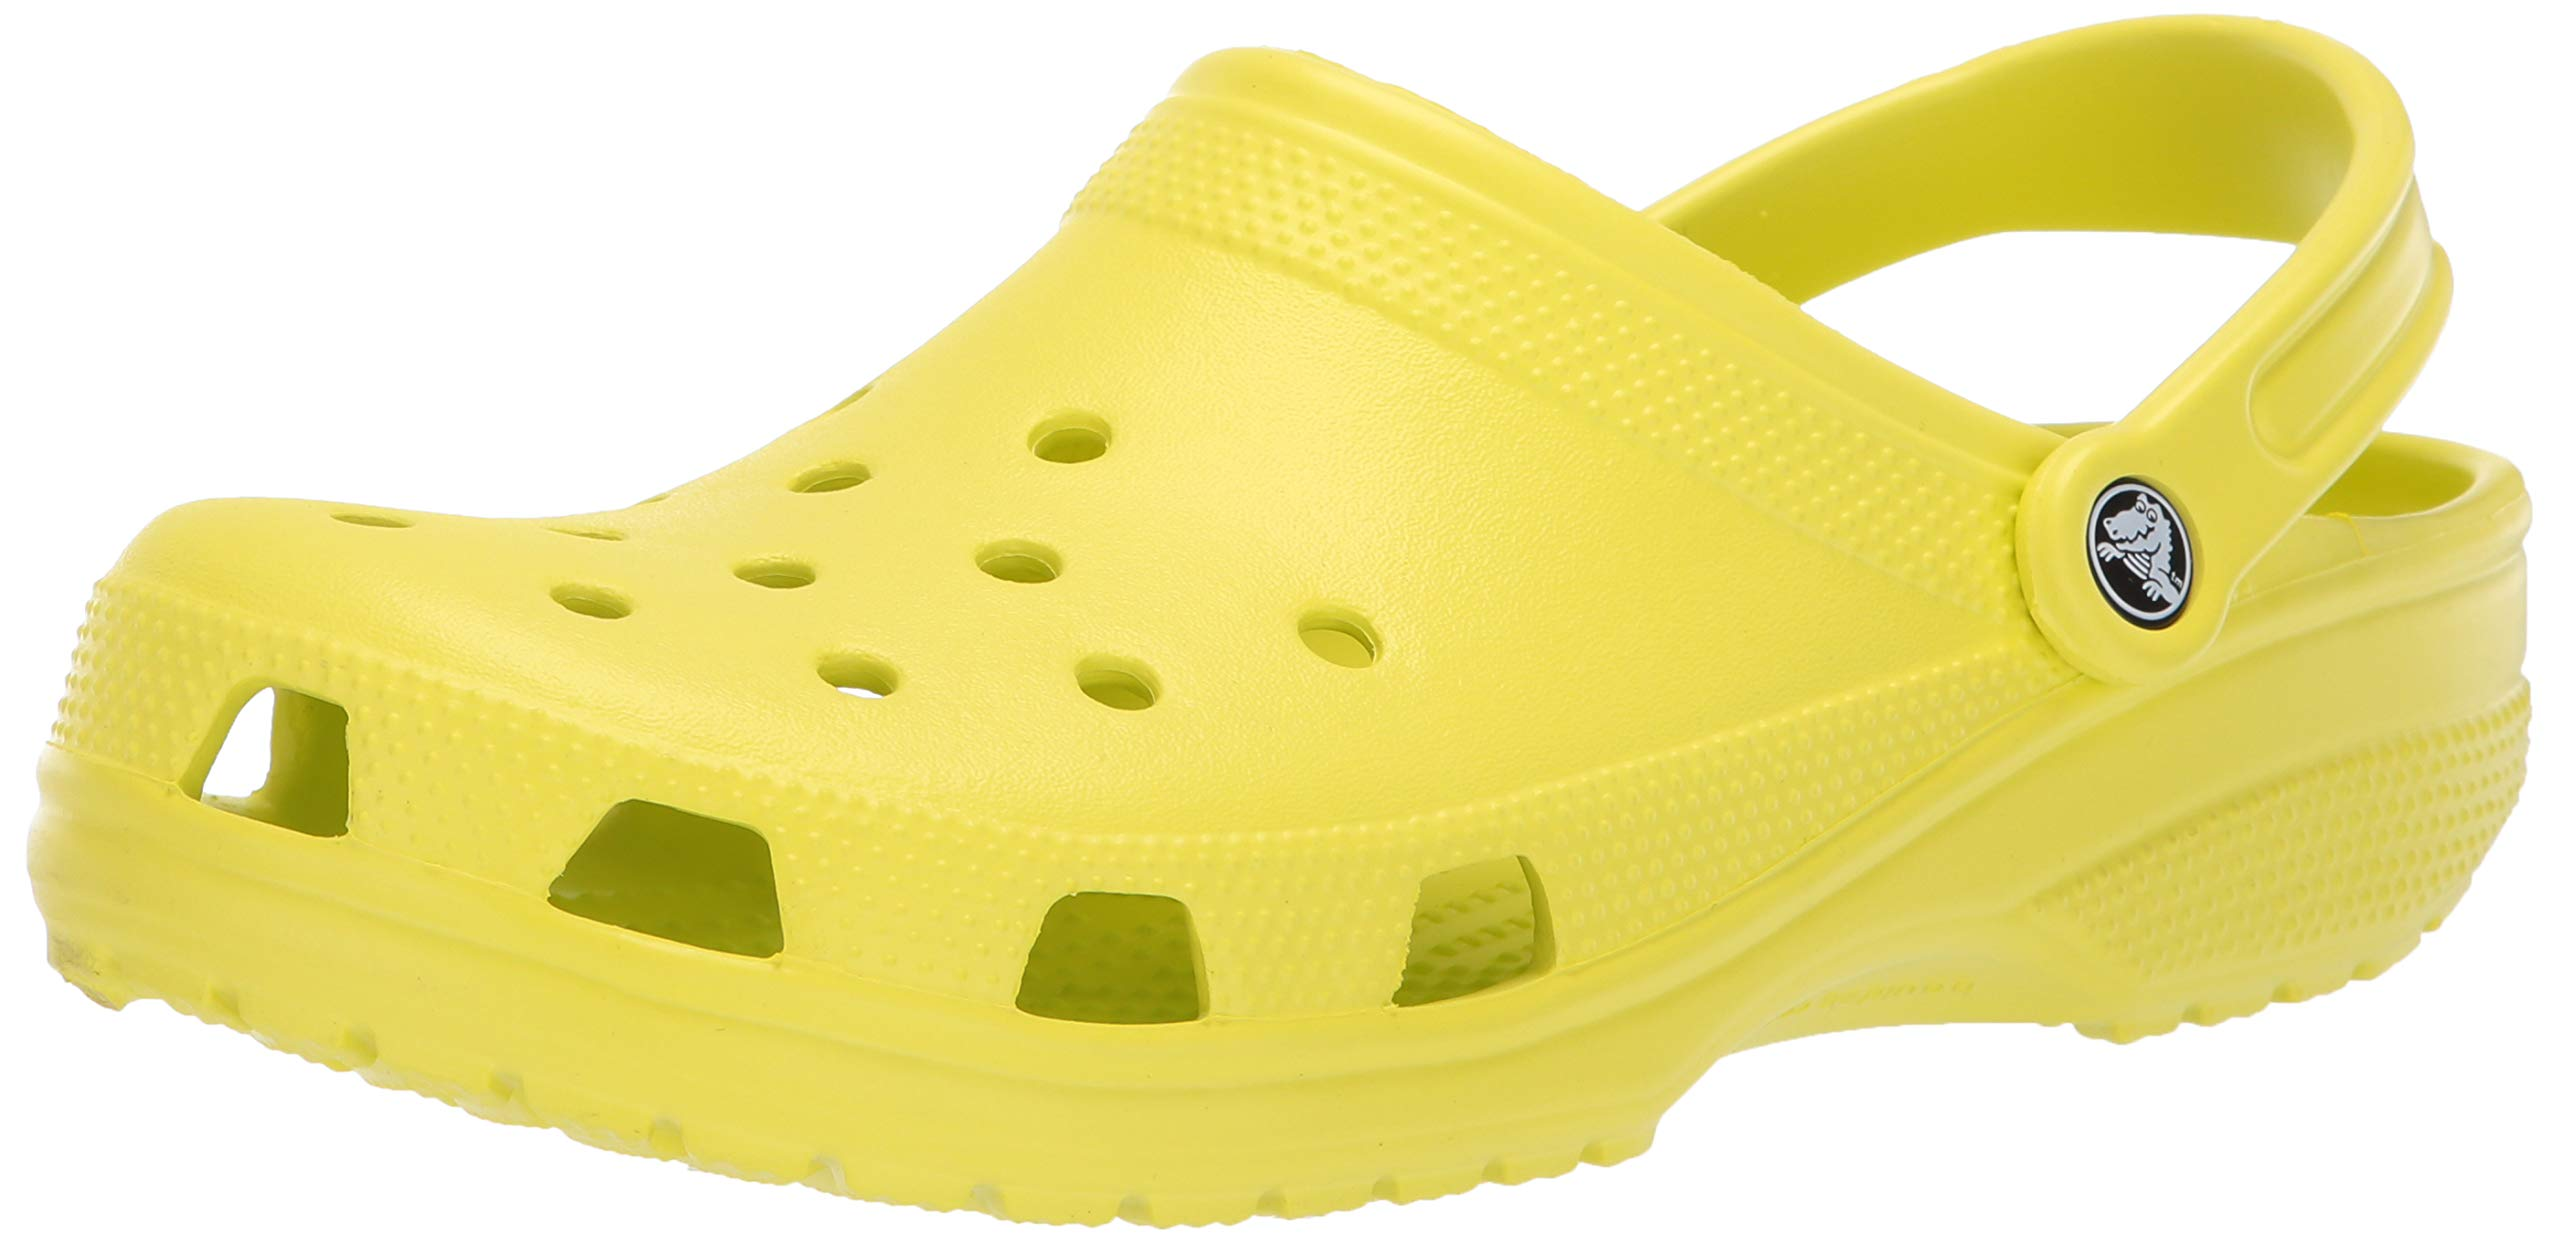 e38bc053fb0732 Crocs Men s and Women s Classic Clog Comfort Slip On Casual Water Shoe  Lightweight product image